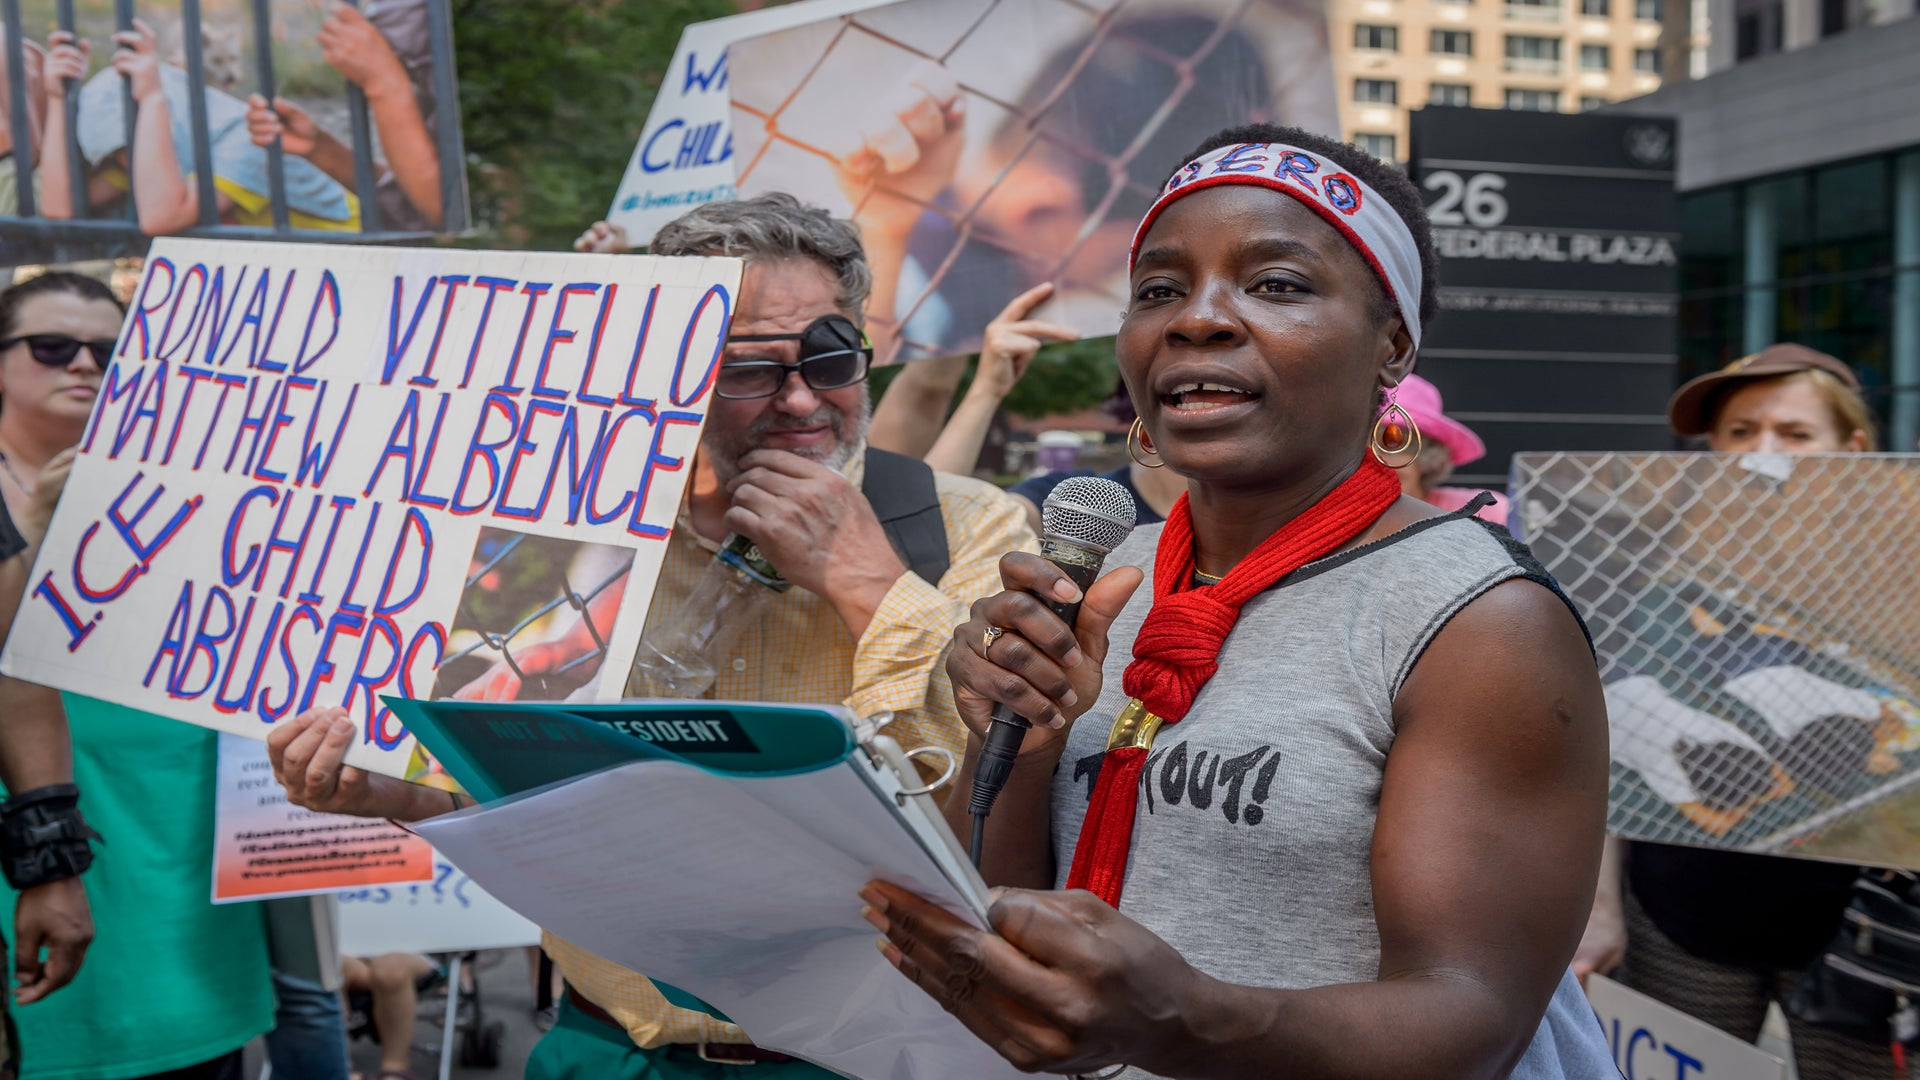 Patricia Okoumou, Statue of Liberty Climber, Denied Jury Trial